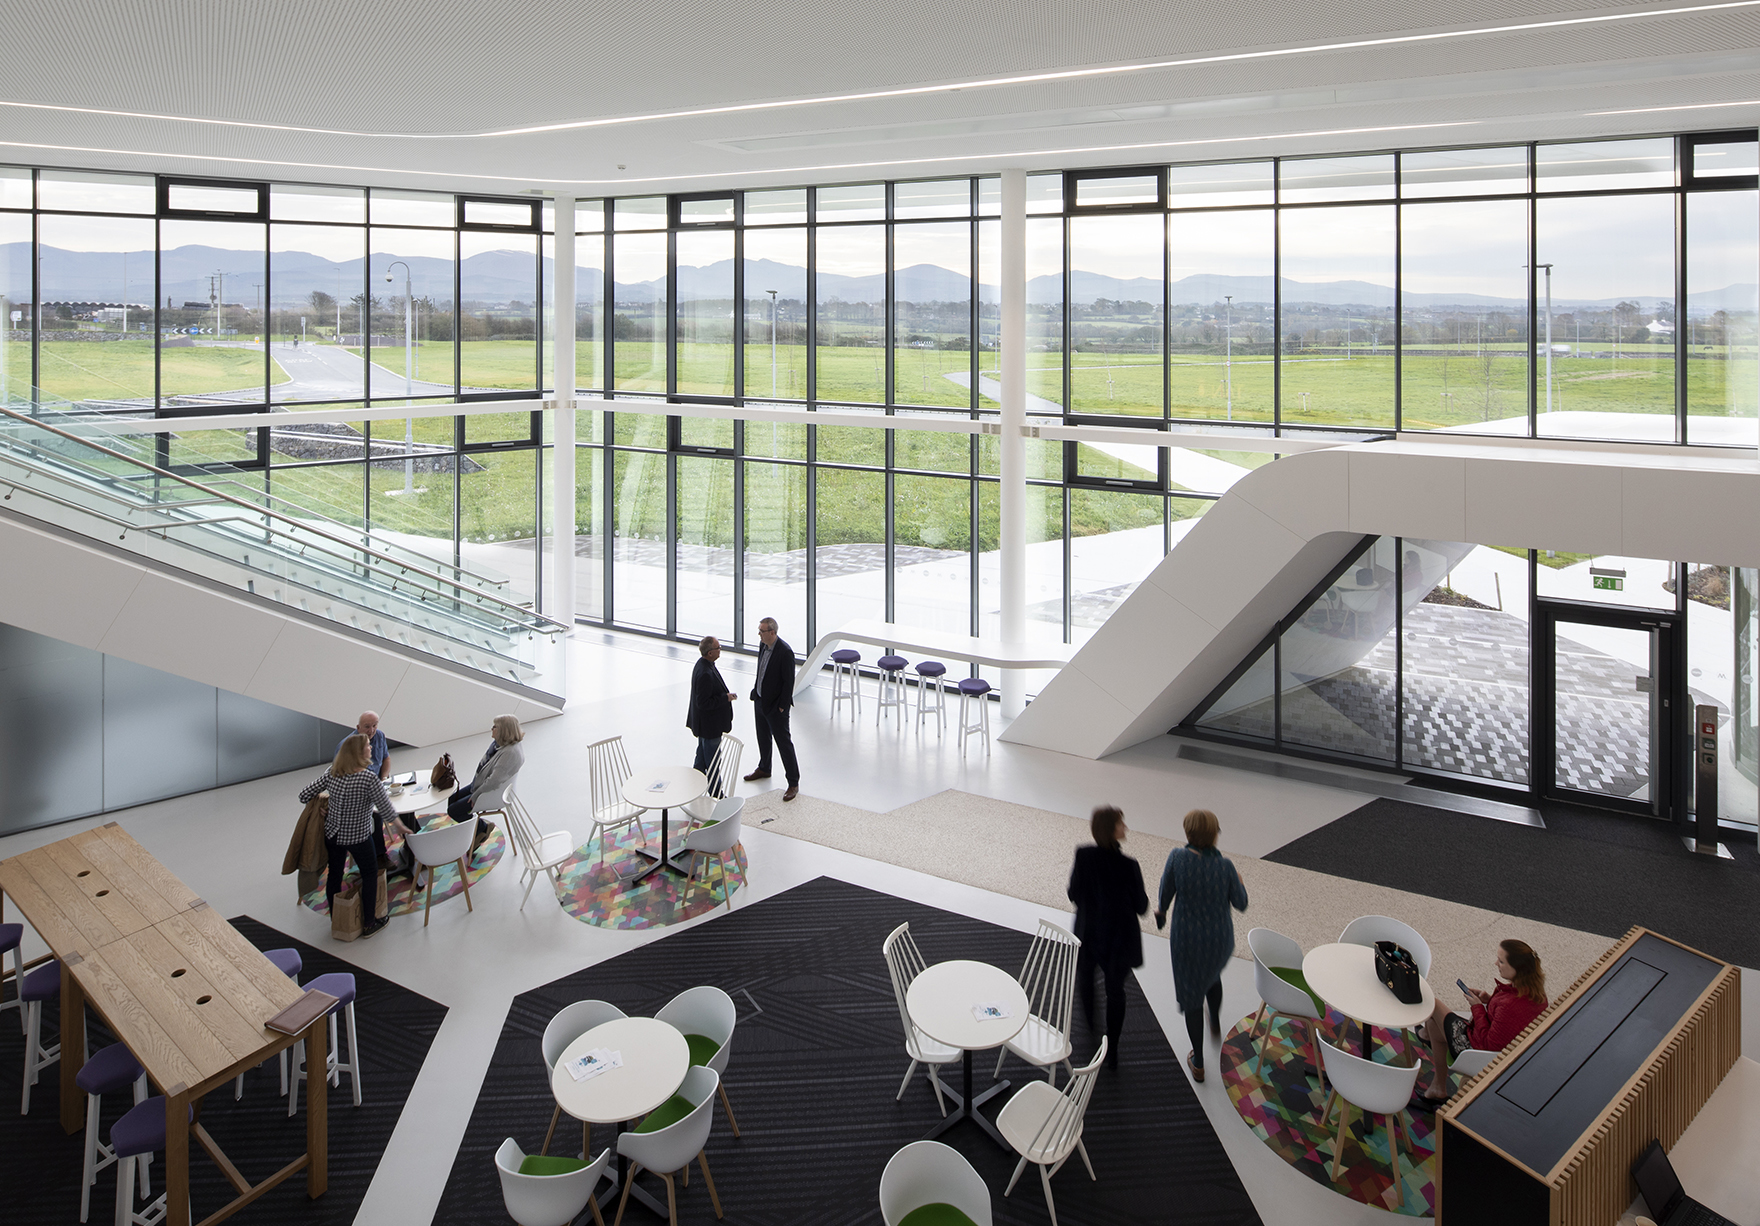 Menai Science Park Anglesey Wales Incubator Labs Offices Open Innovation Space View To Snowdonia Lh